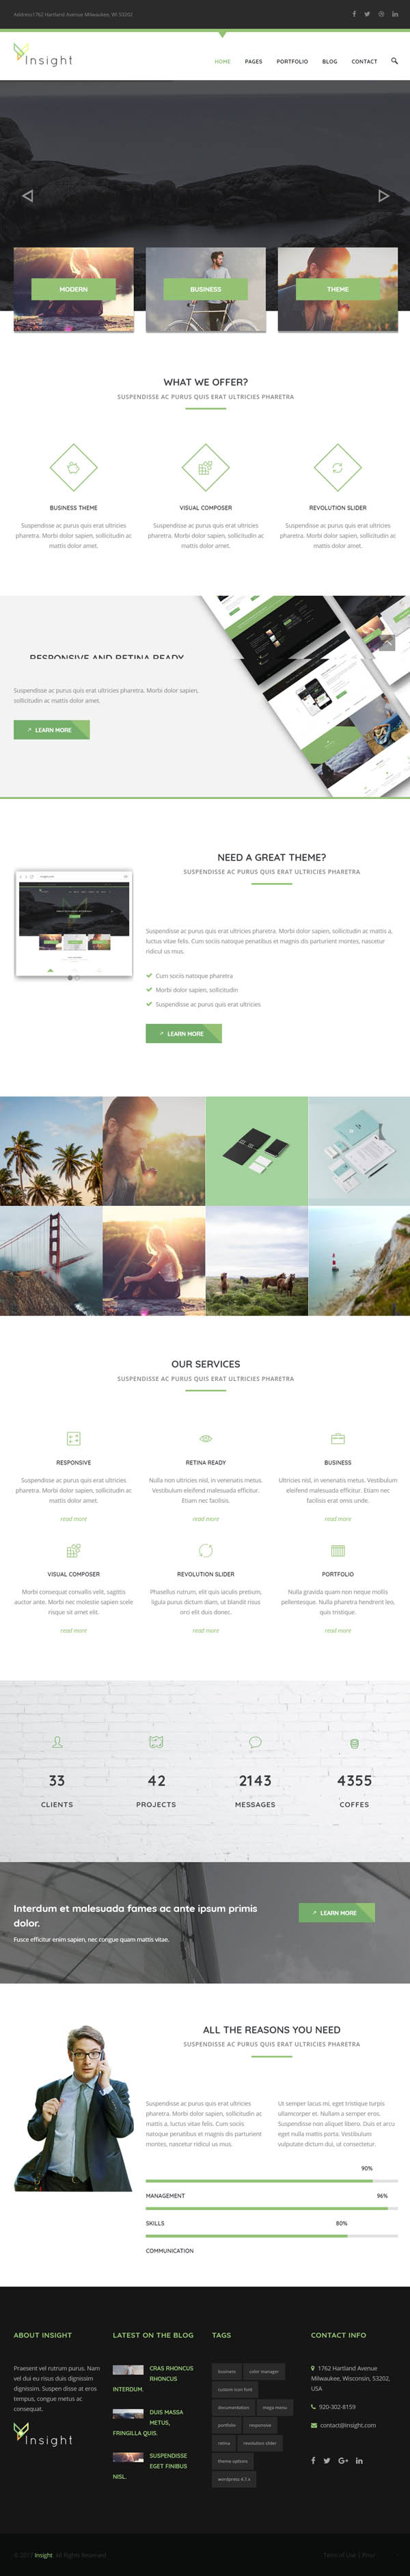 Insight - Premium Business WordPress Theme